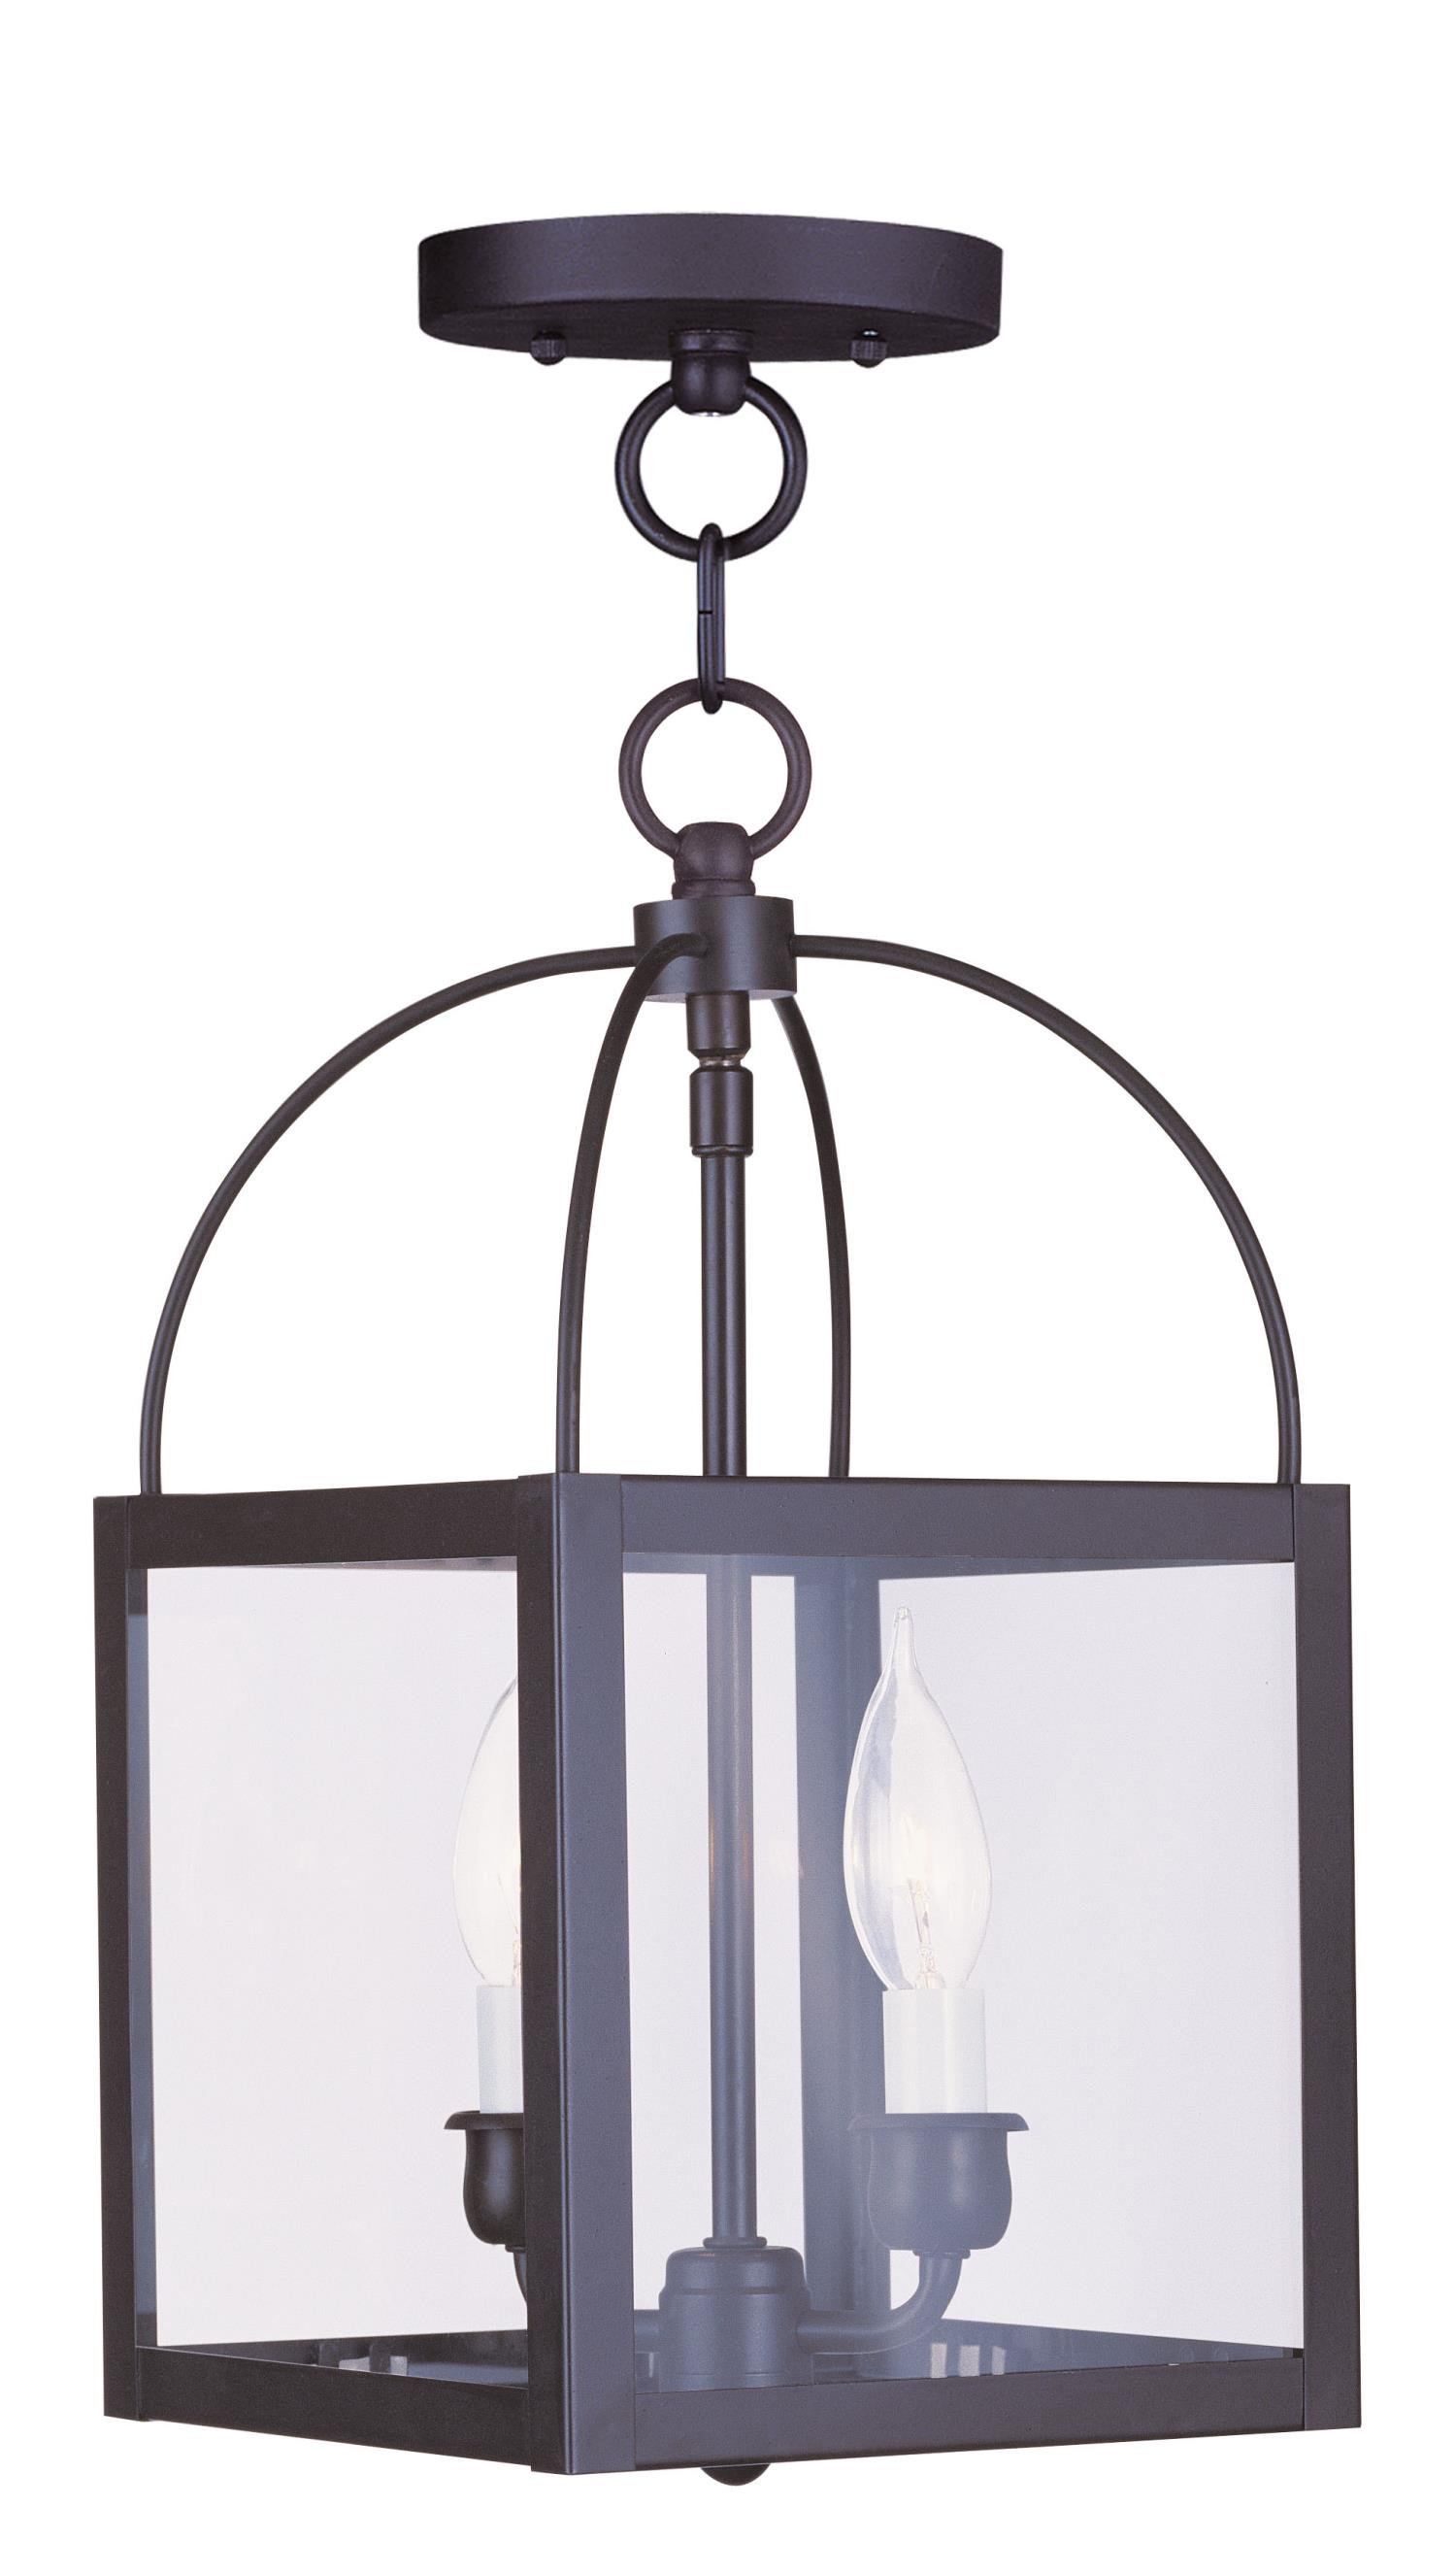 awesome Livex Lighting 4041 07 Pendants from the Milford Collection for home lighting ideas